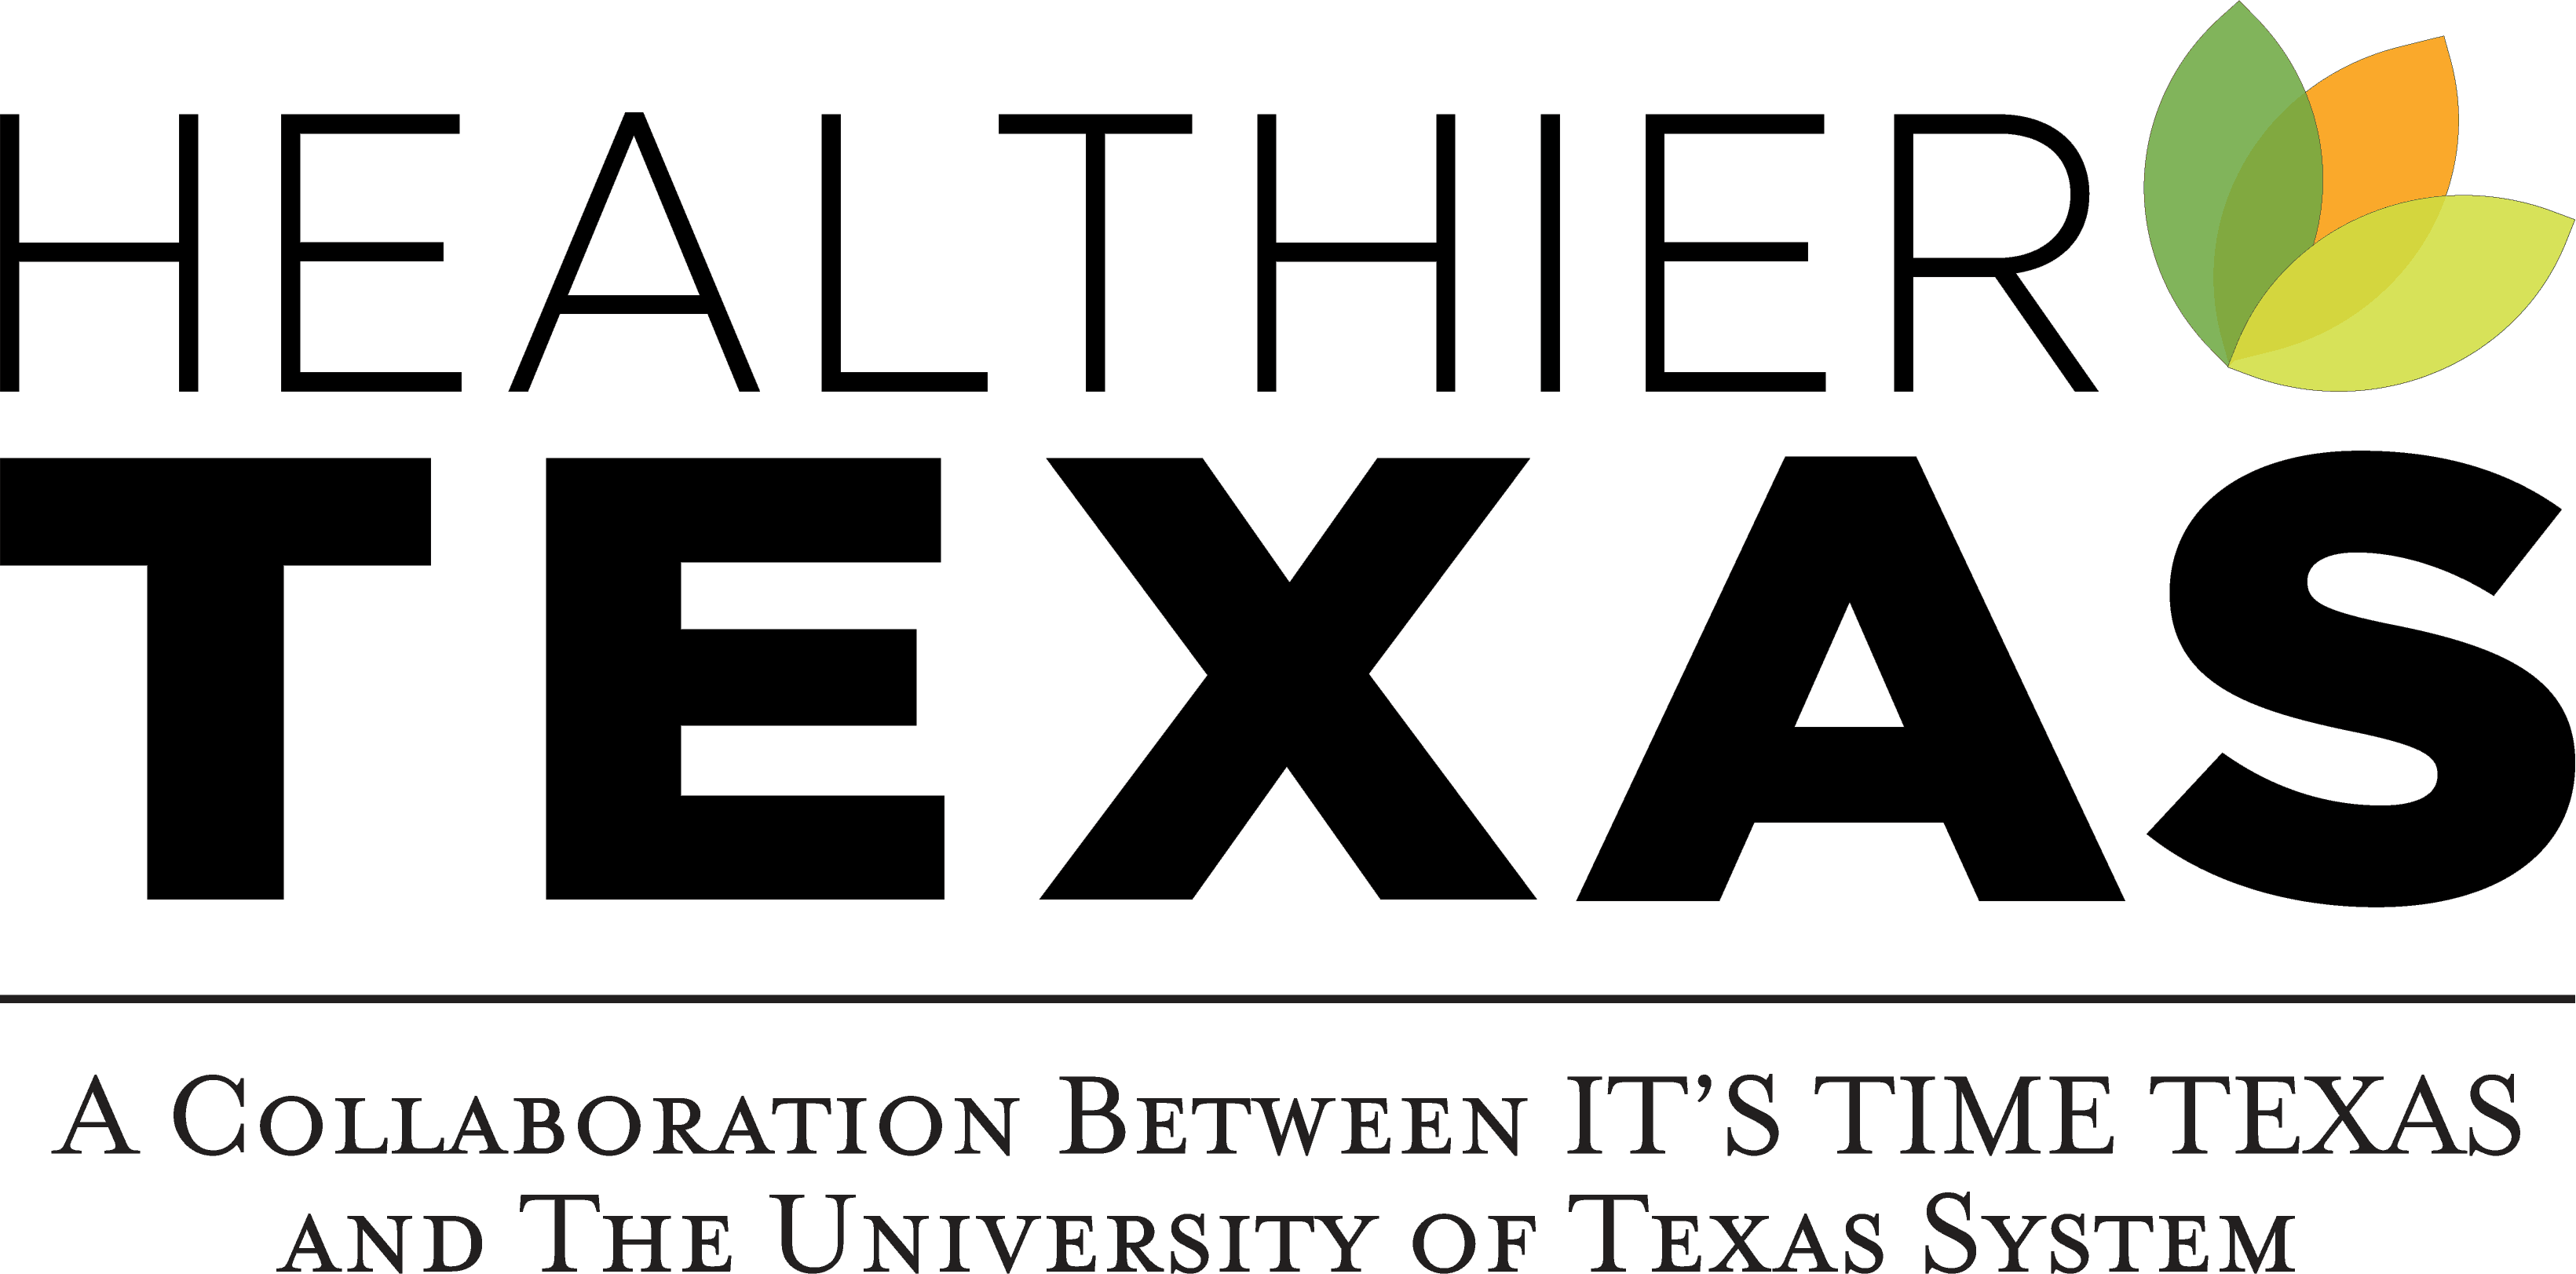 Healthier Texas Summit: A Collaboration Between IT'S TIME TEXAS and The University of Texas System